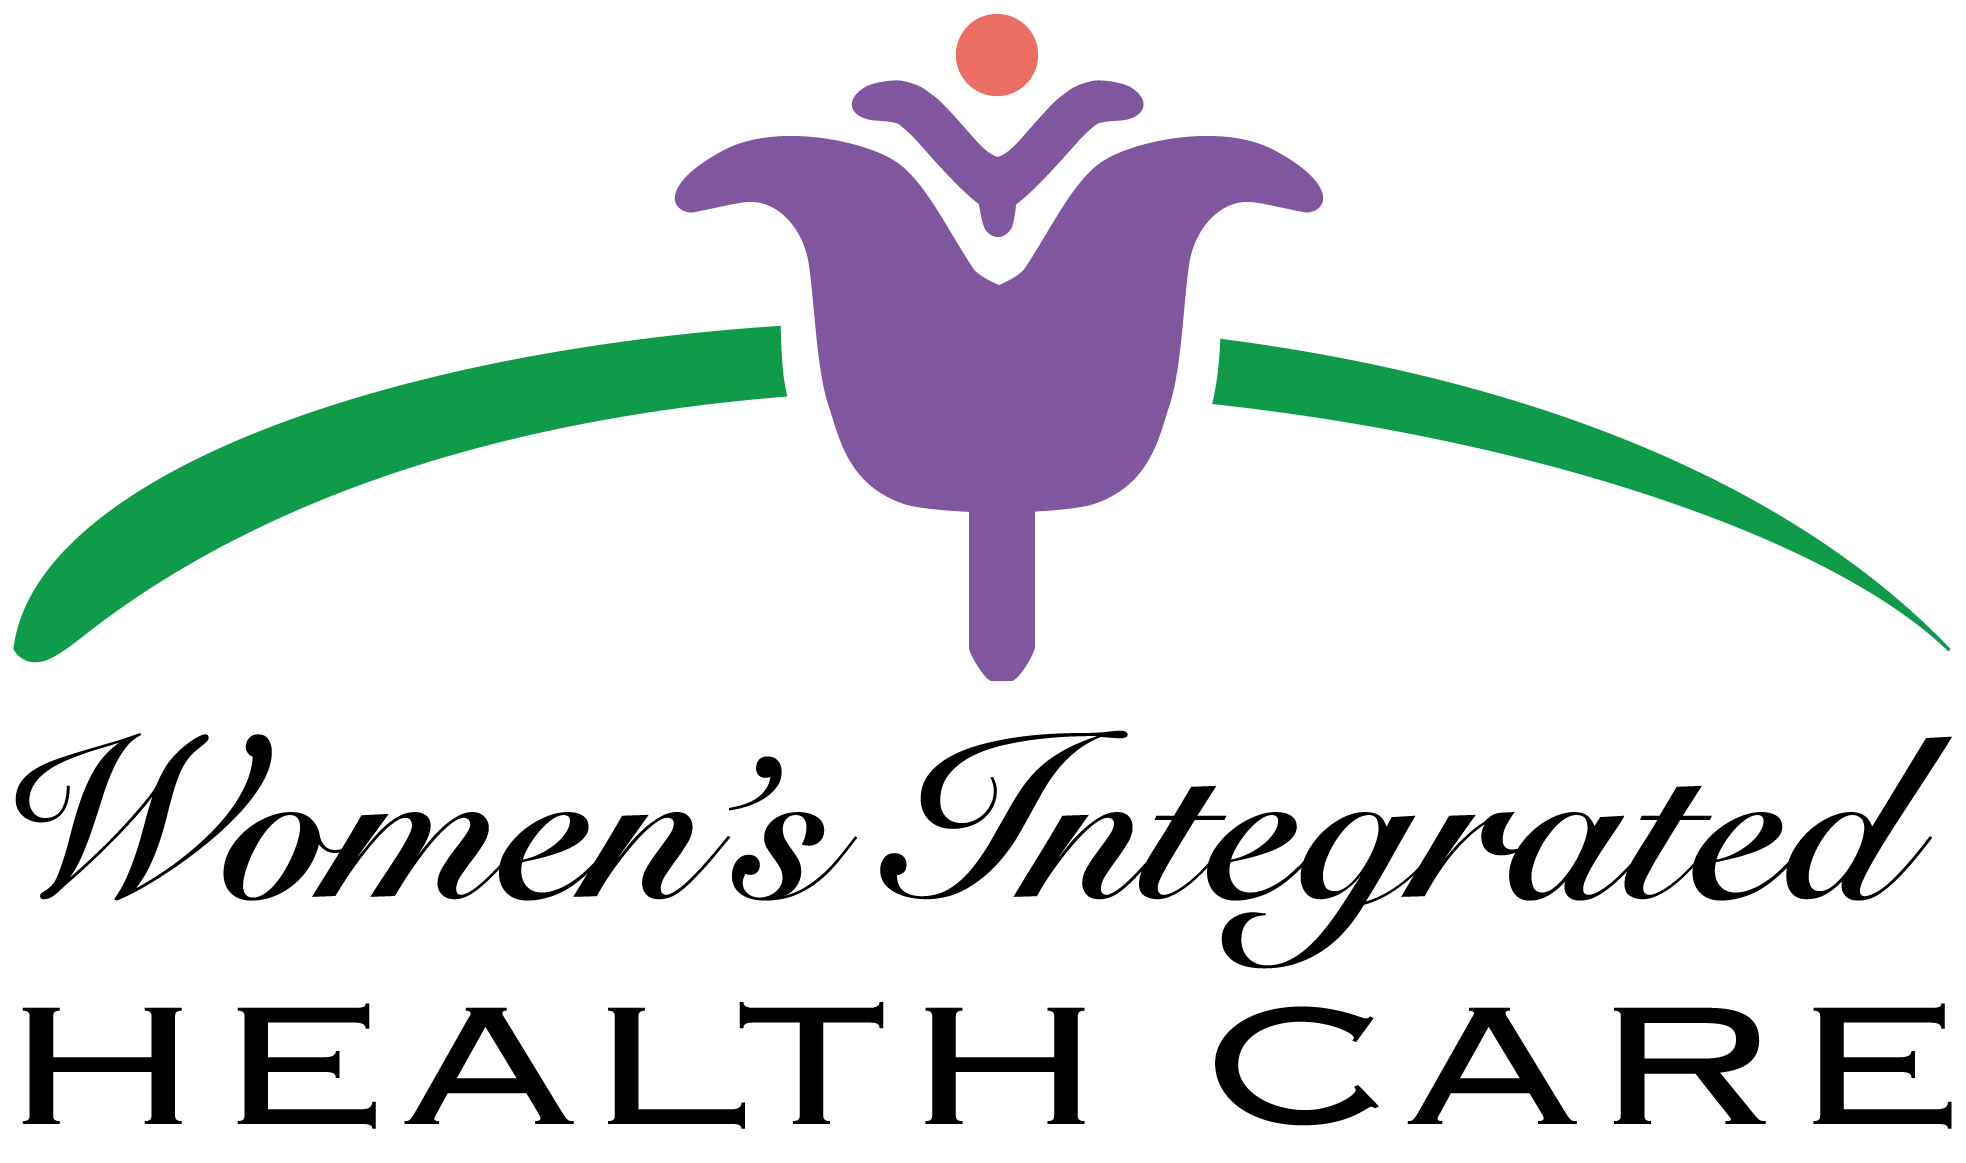 Women's Integrated Health Care